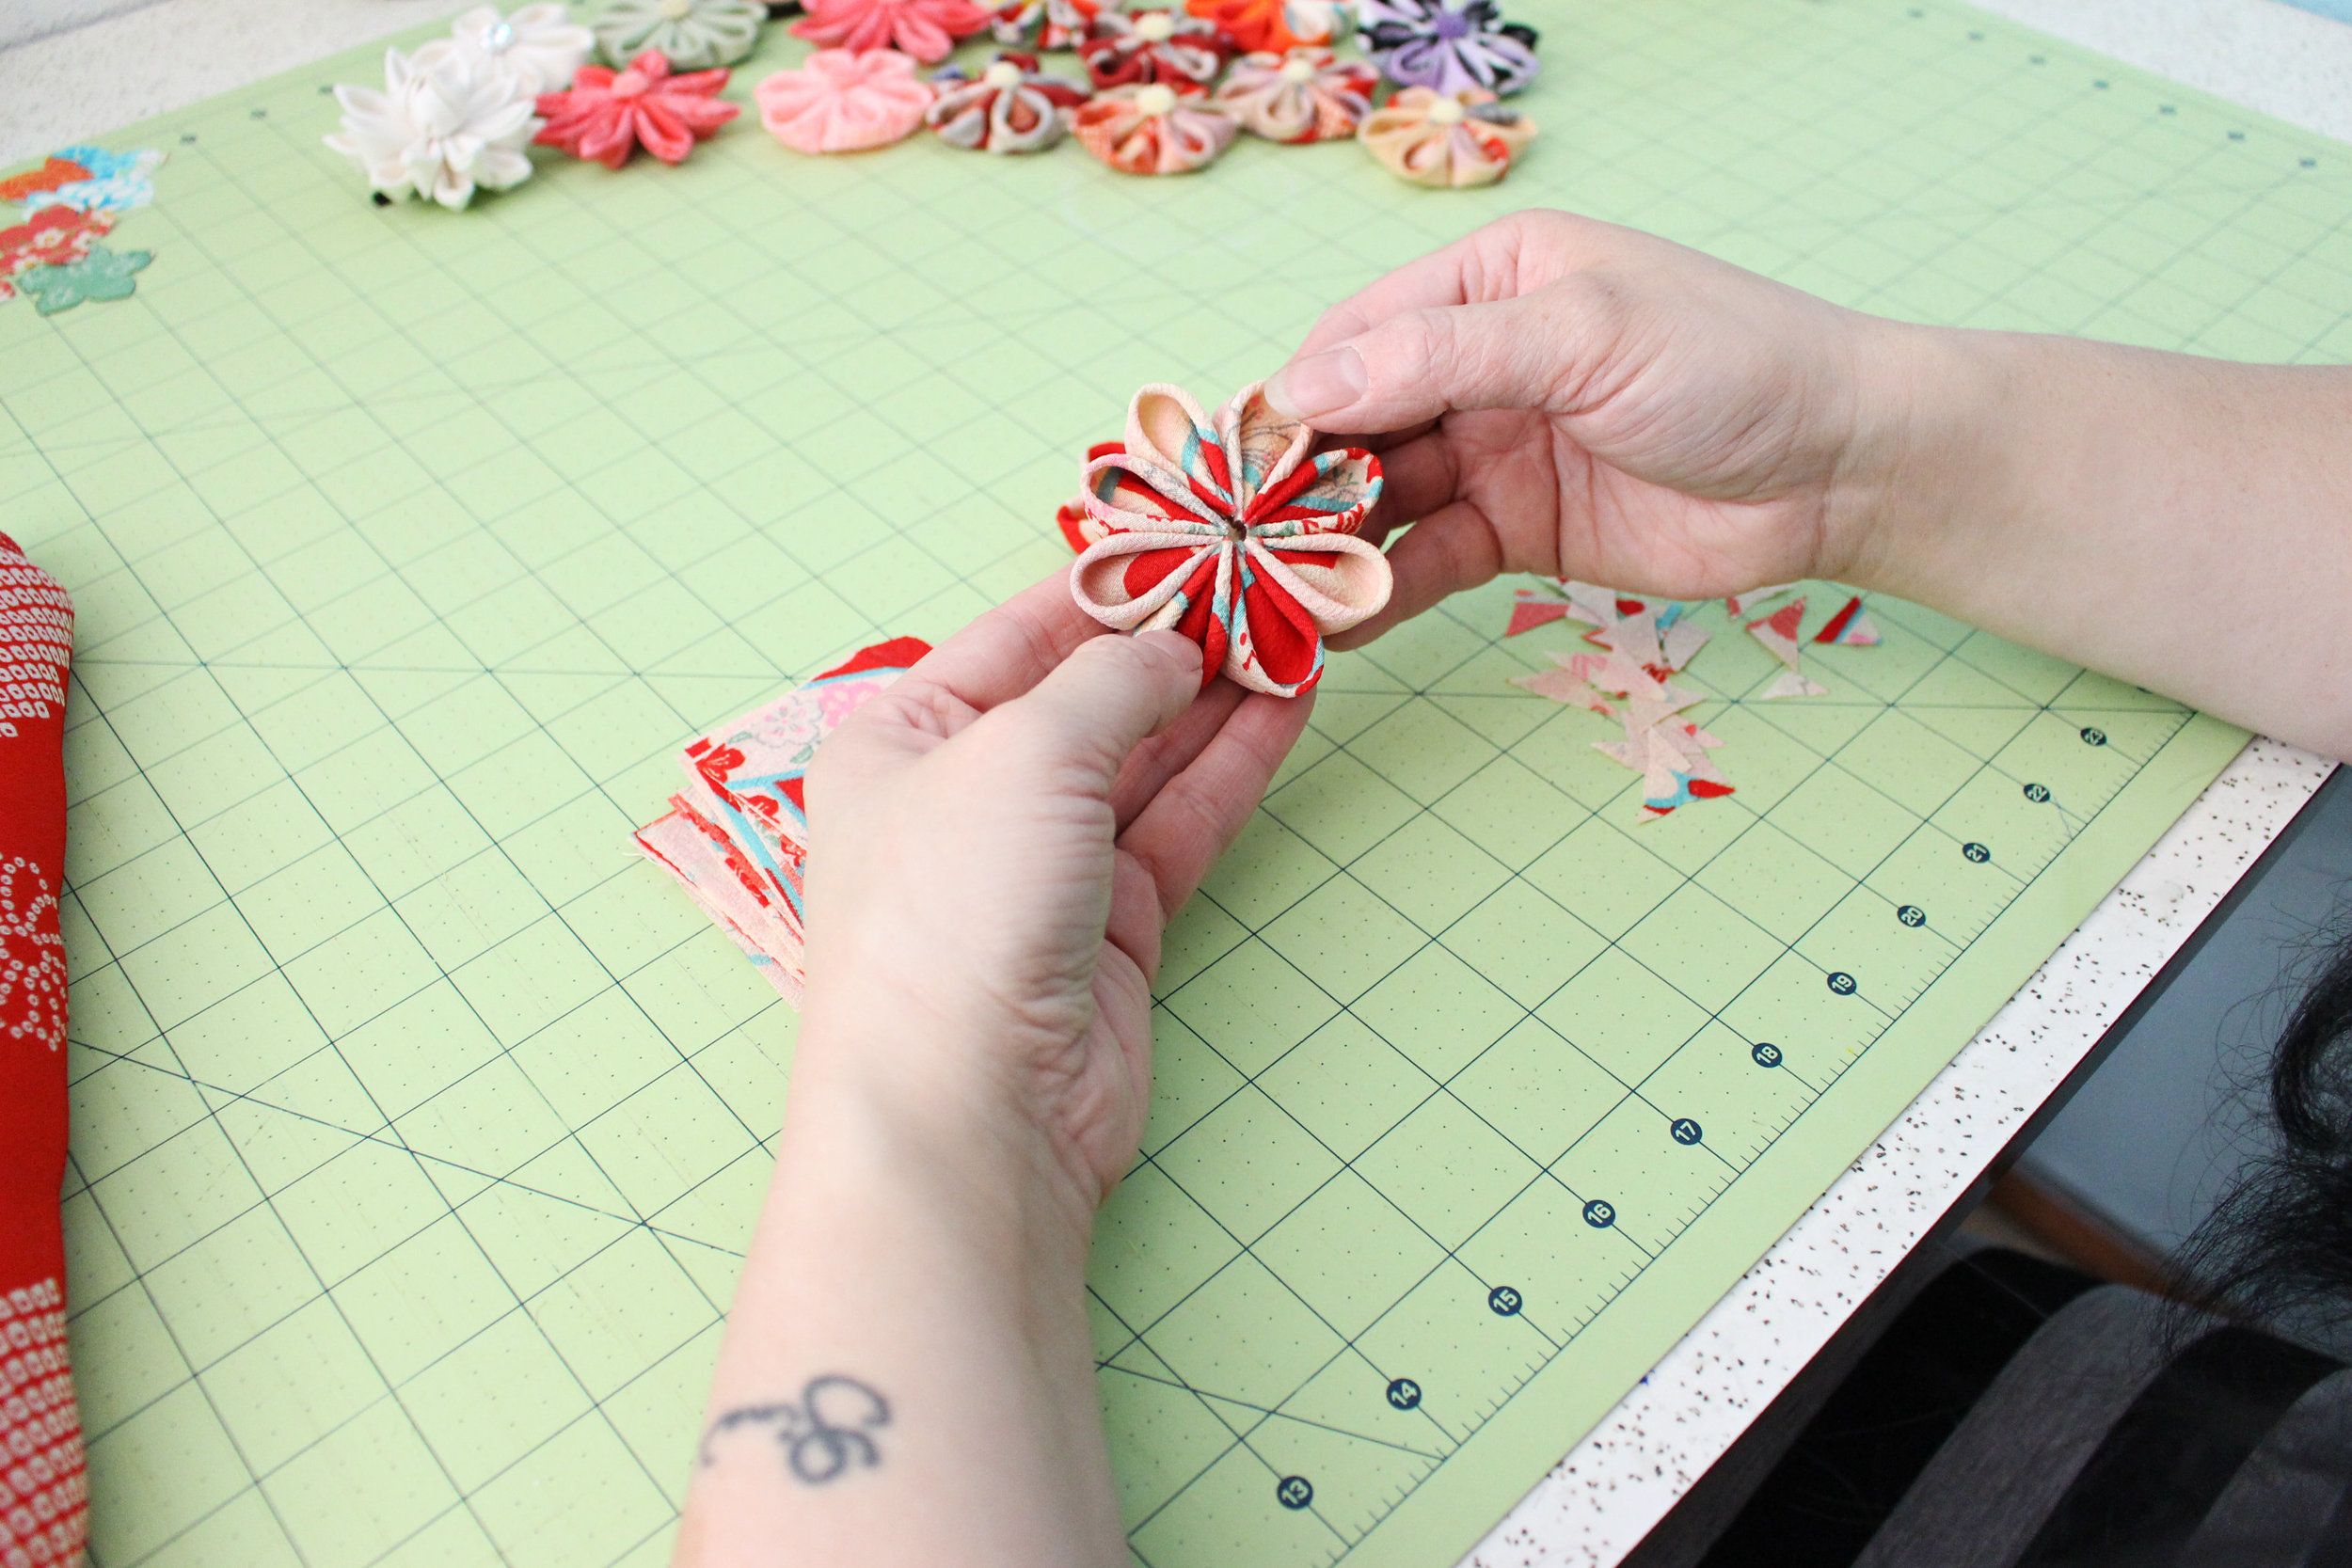 One by one. It's how I get the job done. I get a lot of amazed looks when I saw I hand fold every single petal. But after doing it this long I compare it to knitting for myself. I just get into my zone and fold, fold, fold.